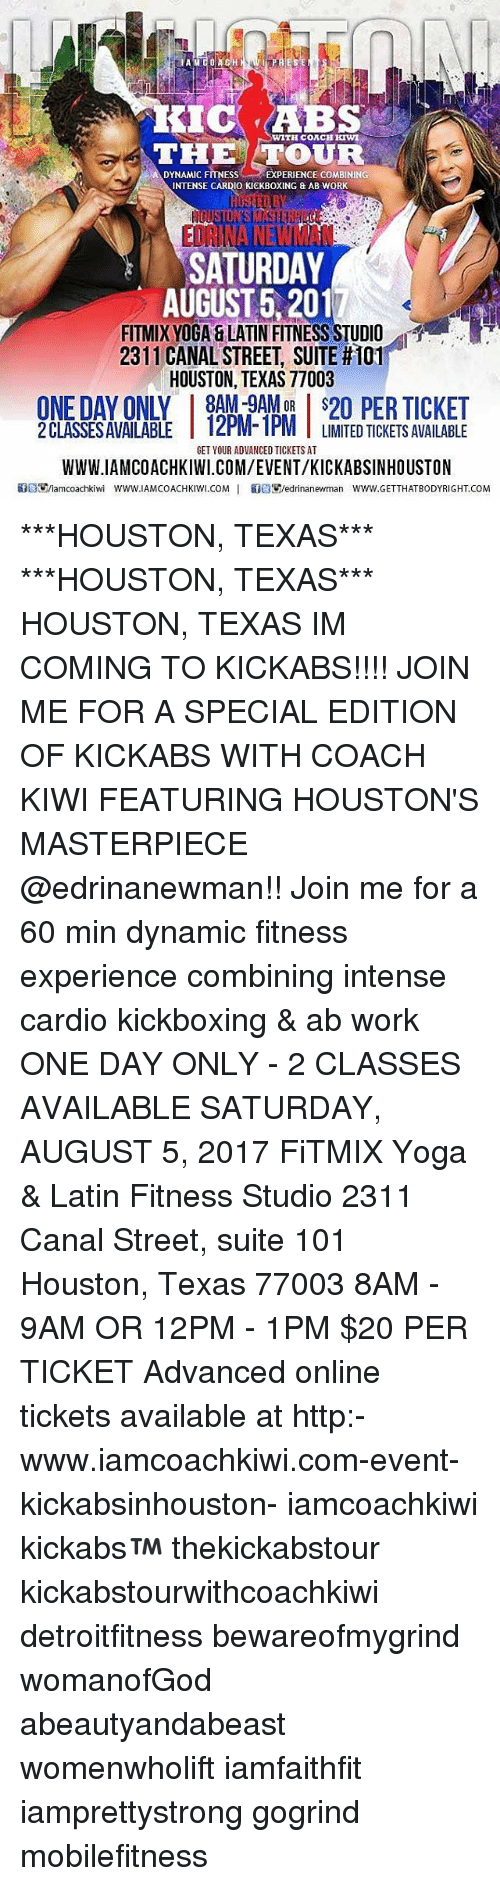 Work Saturday: WITH CORCH KIW  THE  DYNAMIC FITNESS EXPERIENCE COMBININ  DYNAMIC FI ESS-- EXPERIENCE COMBININ  INTENSE CARDIO KICKBOXING & AB WORK  SATURDAY  AUGUST 5,2017  FITMIX YOGA &LATIN FITNESS STUDIO  231 1 CANAL STREET, SUITE #101  HOUSTON, TEXAS 77003  ONE DAY ONLY 8AM-9AMOR $20 PER TICKET  2 CLASSESAVAILABLE 12PM-1PM TLIMITED TICKETS AVAILABLE  IPM T LIMITED TICKETS AVAILABLE  GET YOUR ADVANCED TICKETS AT  WWW.IAMCOACHKIWI.COM/EVENT/KICKABSINHOUSTON  Easnamcoachkiwi www.IAMCOACHKIWI.COM 1 馀目鄋edrinanewman www.GETTHATBODYRIGHT.COM ***HOUSTON, TEXAS*** ***HOUSTON, TEXAS*** HOUSTON, TEXAS IM COMING TO KICKABS!!!! JOIN ME FOR A SPECIAL EDITION OF KICKABS WITH COACH KIWI FEATURING HOUSTON'S MASTERPIECE @edrinanewman!! Join me for a 60 min dynamic fitness experience combining intense cardio kickboxing & ab work ONE DAY ONLY - 2 CLASSES AVAILABLE SATURDAY, AUGUST 5, 2017 FiTMIX Yoga & Latin Fitness Studio 2311 Canal Street, suite 101 Houston, Texas 77003 8AM - 9AM OR 12PM - 1PM $20 PER TICKET Advanced online tickets available at http:-www.iamcoachkiwi.com-event-kickabsinhouston- iamcoachkiwi kickabs™ thekickabstour kickabstourwithcoachkiwi detroitfitness bewareofmygrind womanofGod abeautyandabeast womenwholift iamfaithfit iamprettystrong gogrind mobilefitness